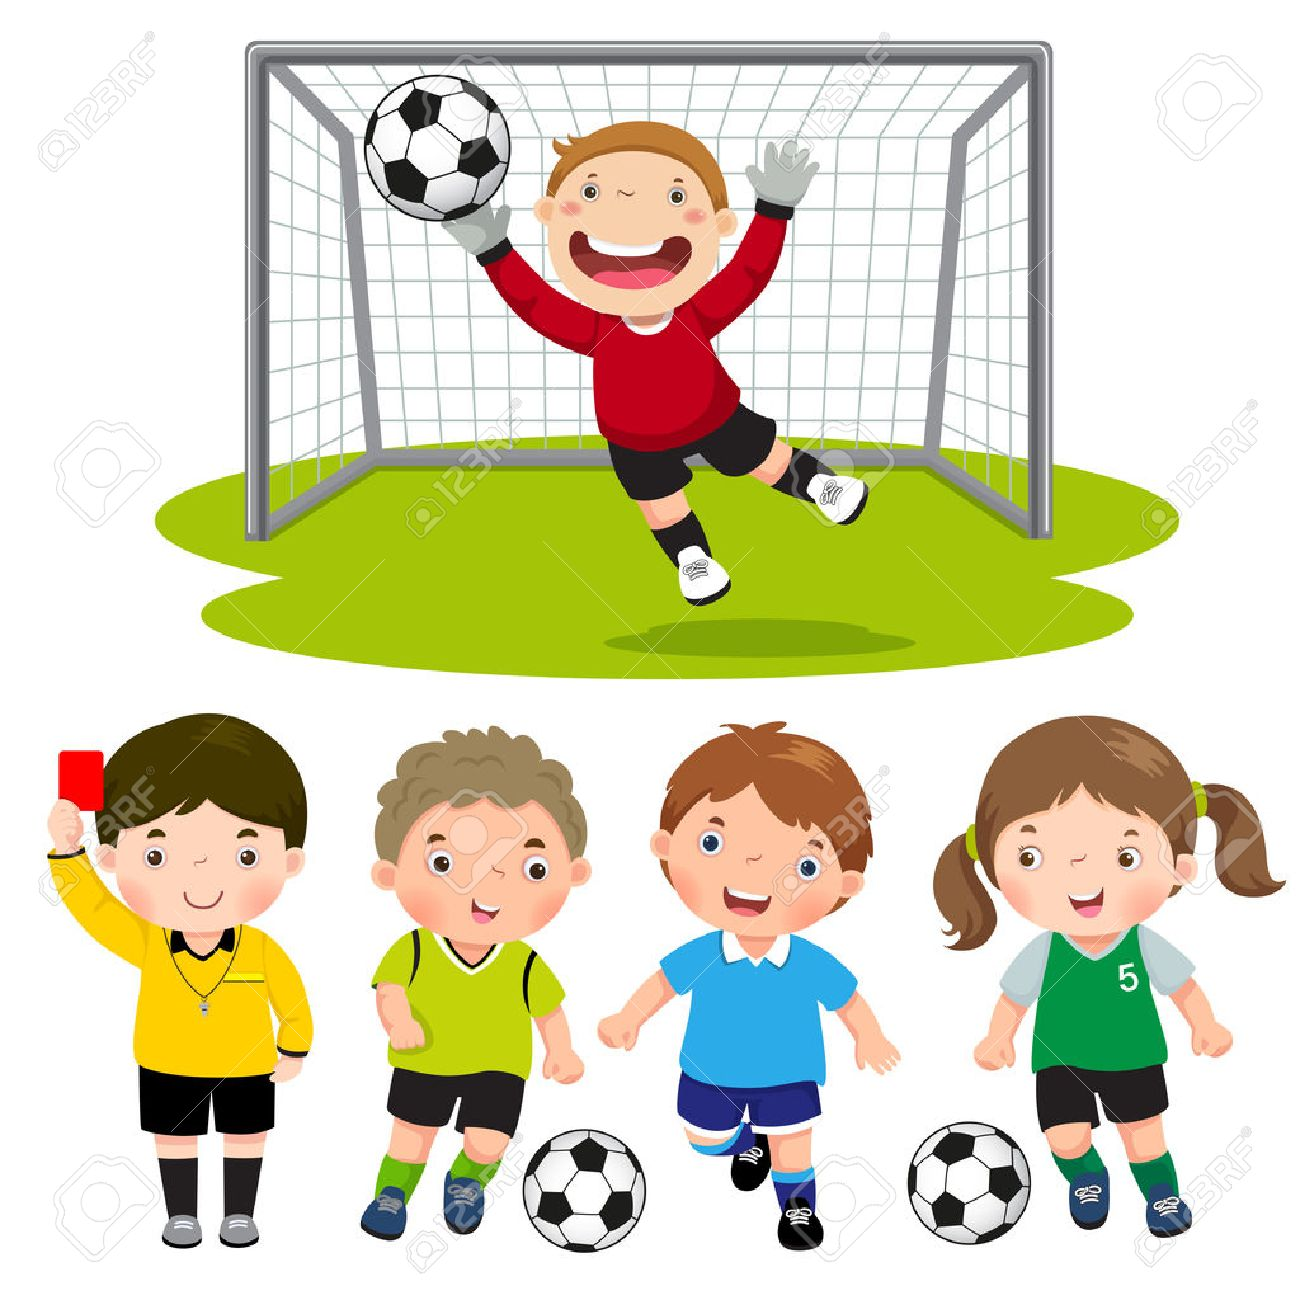 Set of cartoon soccer kids with different pose - 57753762